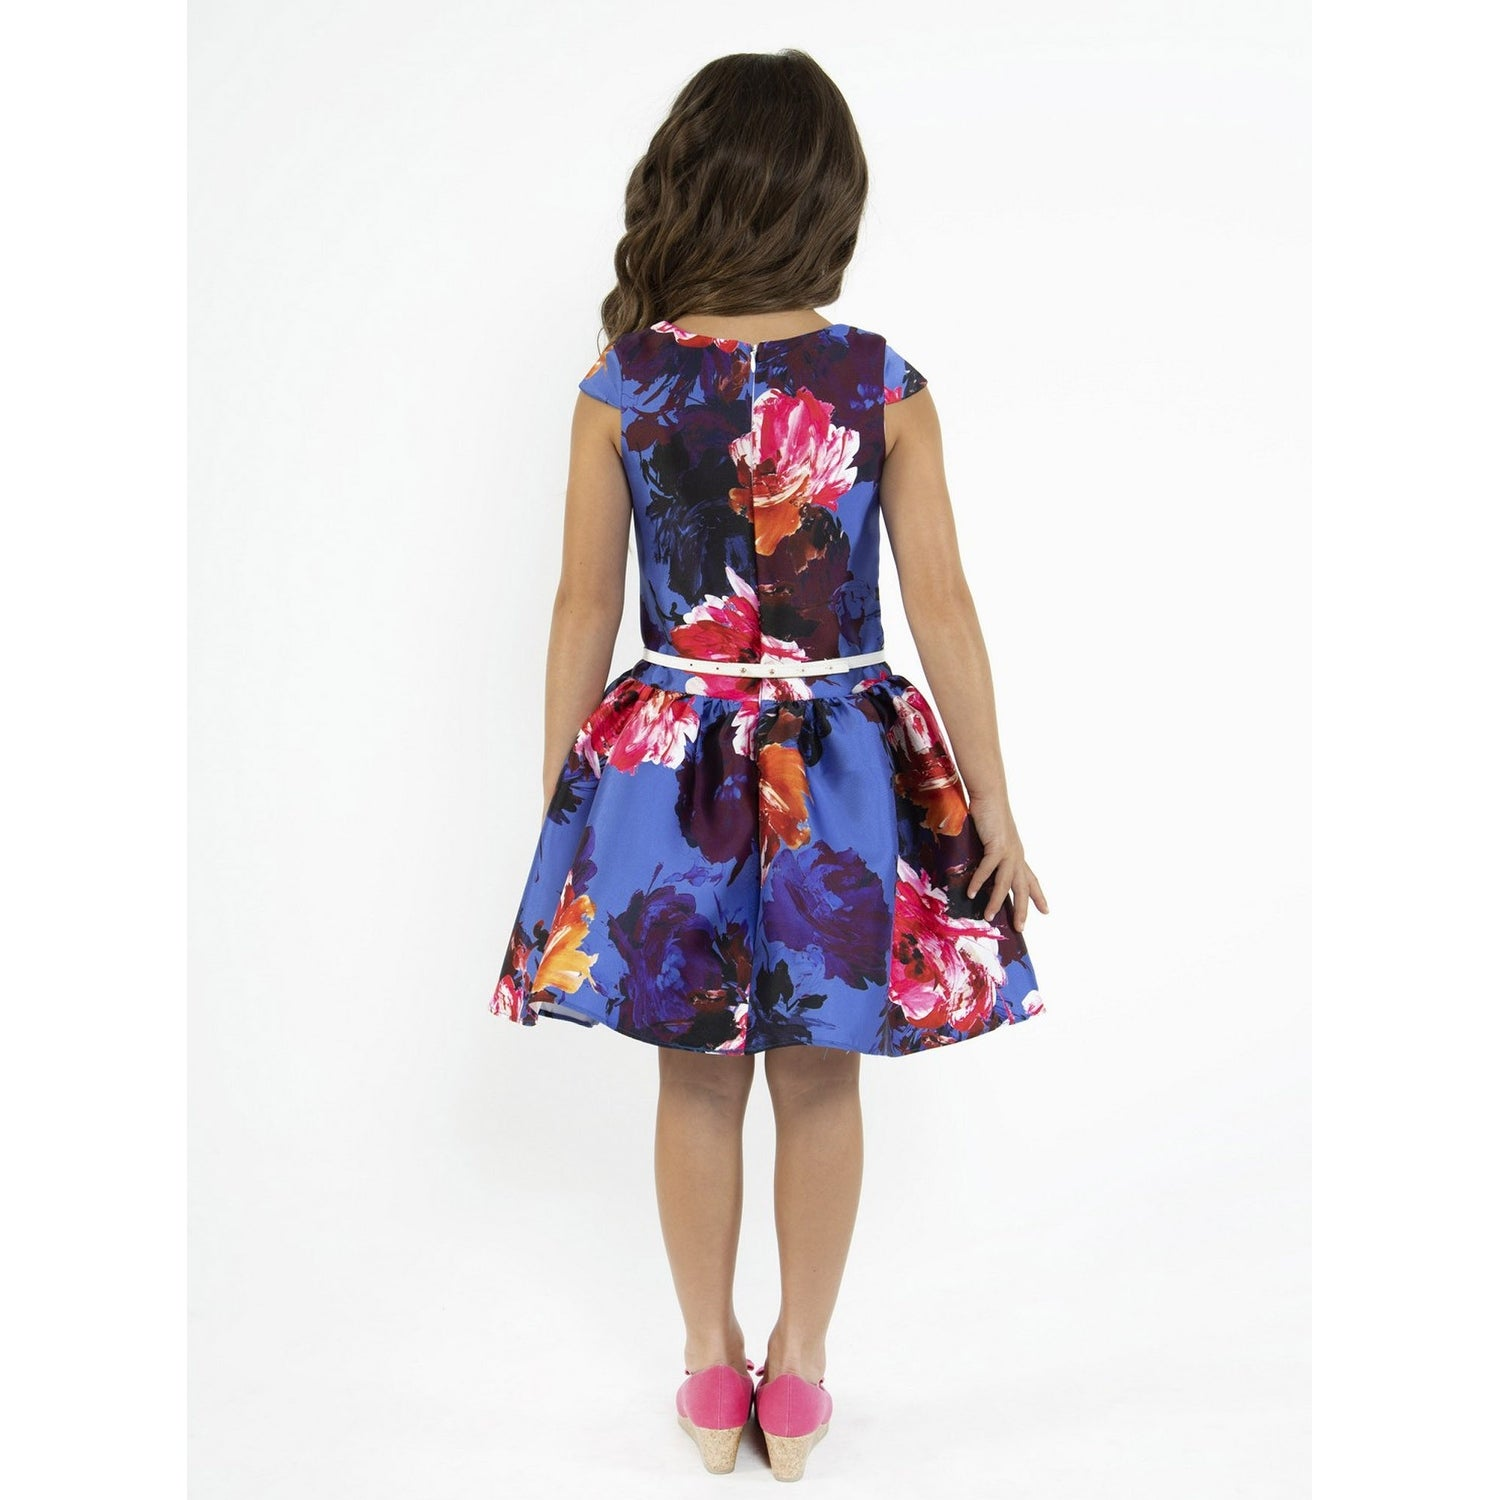 df6825f4fb Shop Kids Dream Little Girls Royal Blue Floral Print Mikado Flower Girl  Dress - Free Shipping Today - Overstock - 23159689